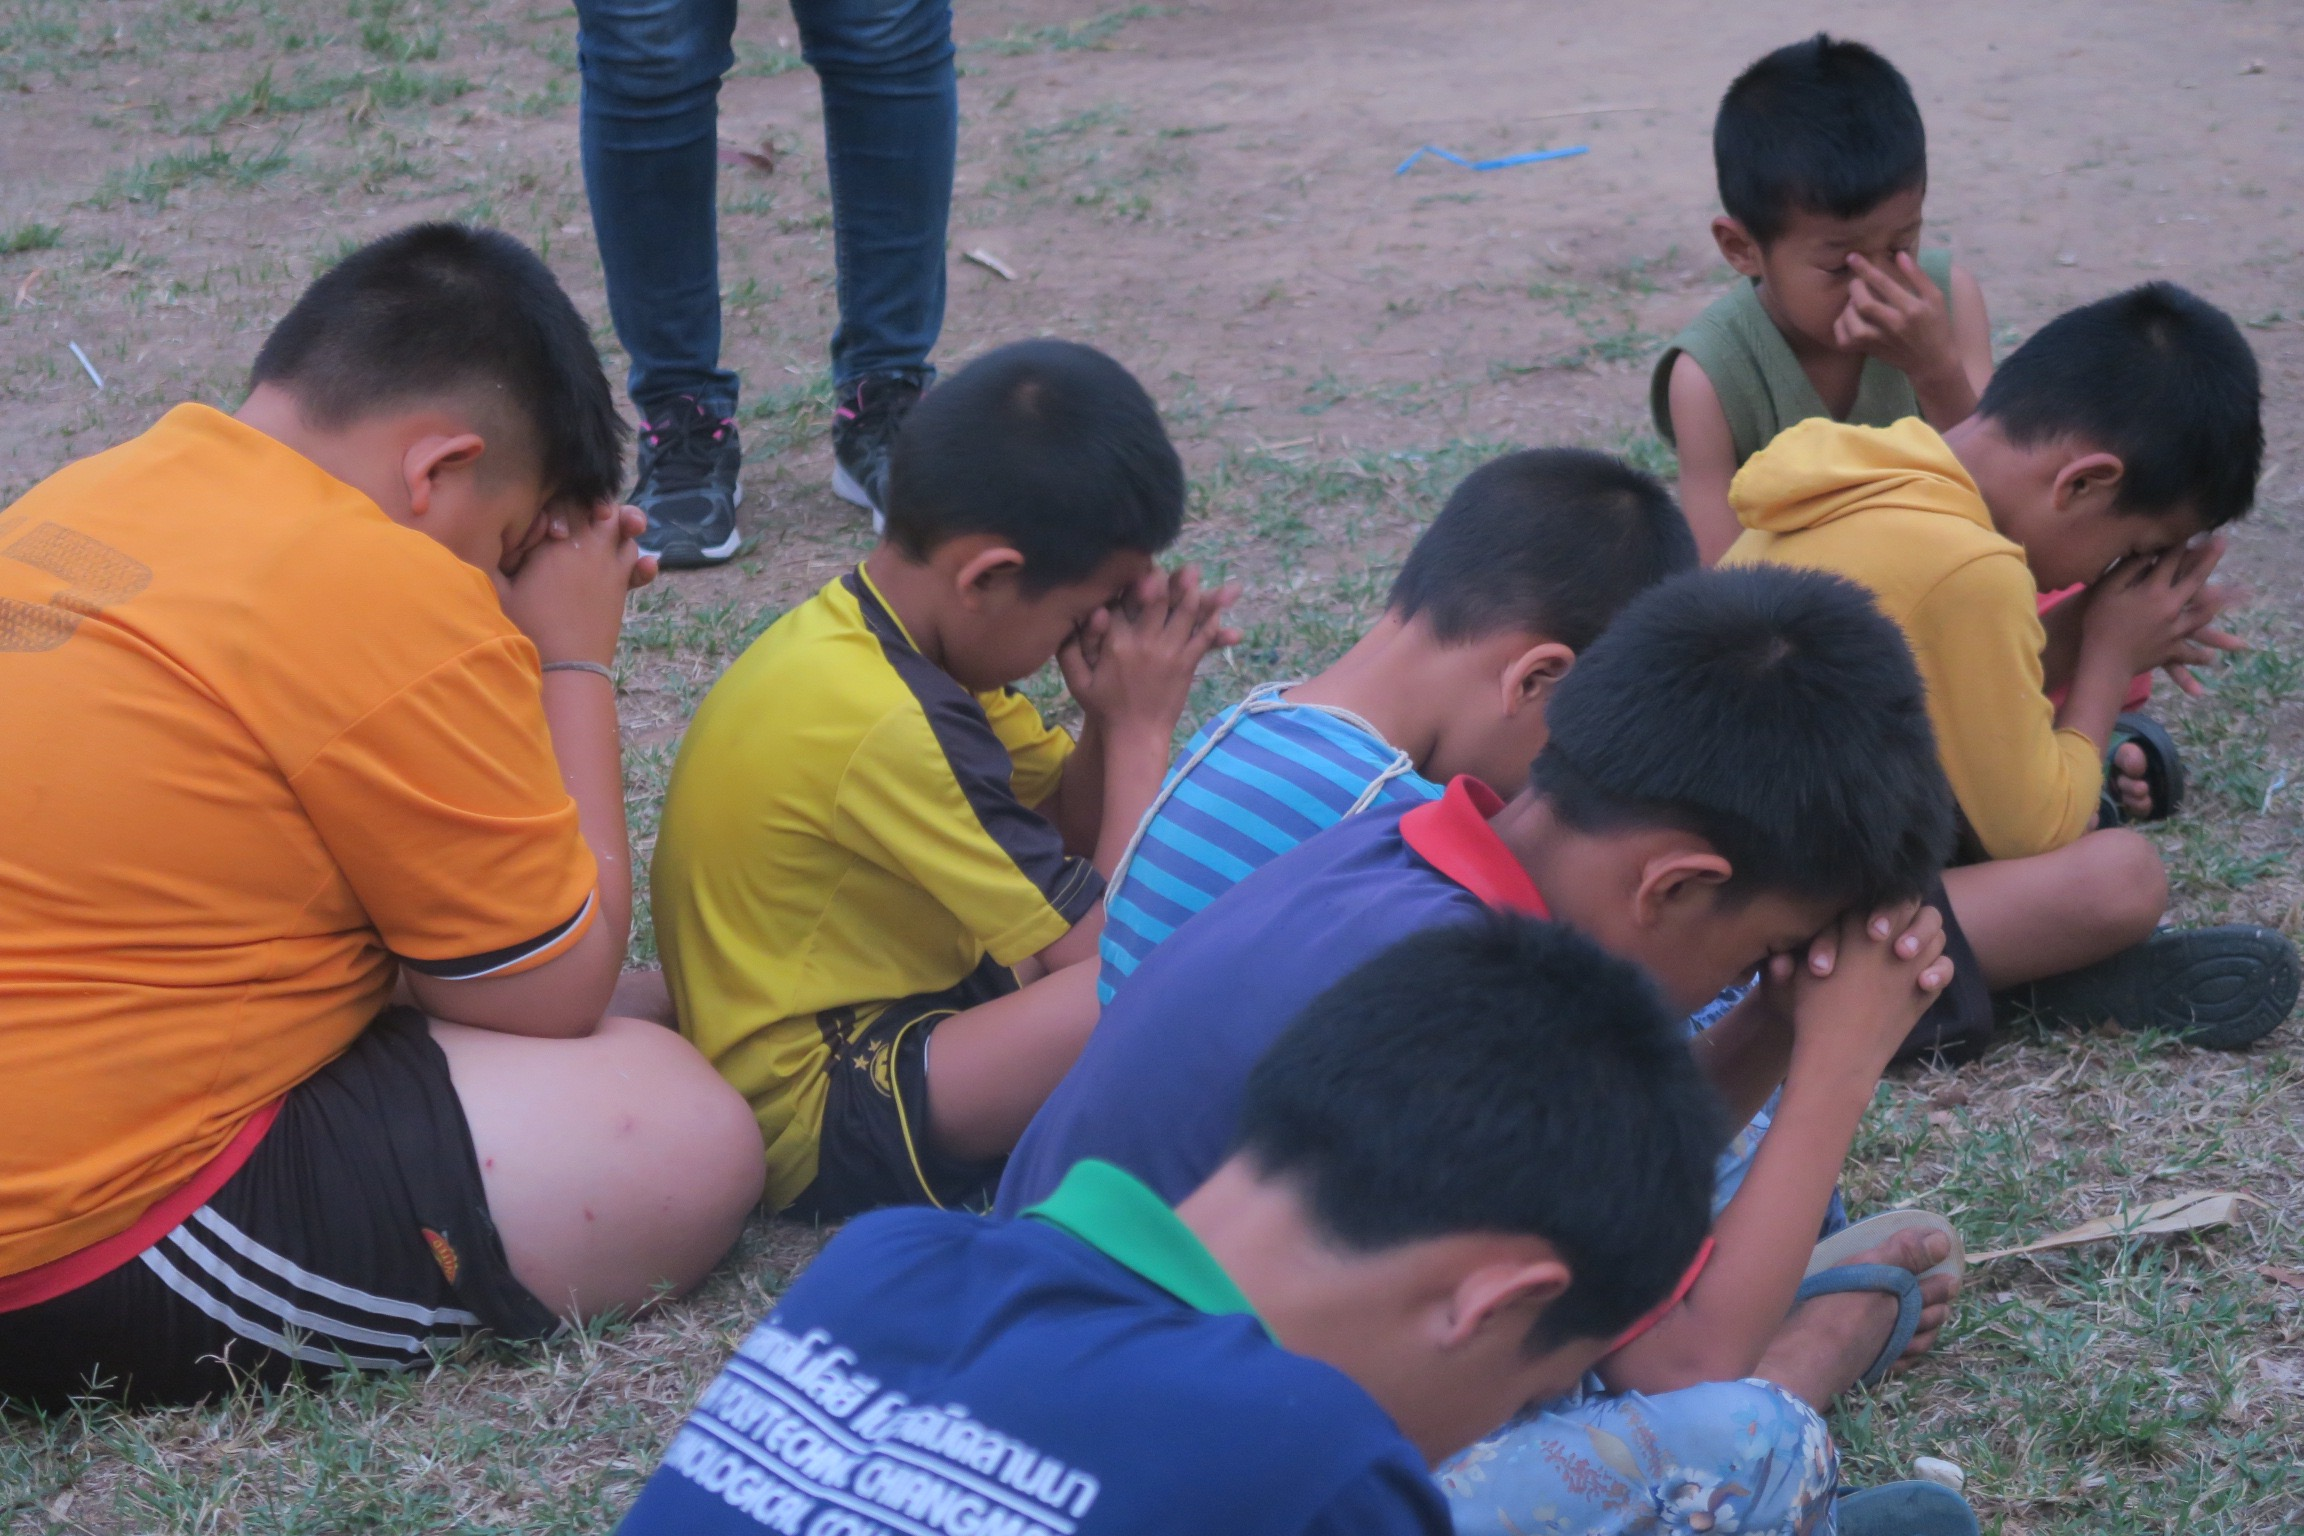 Children praying after a time of fellowship over football.